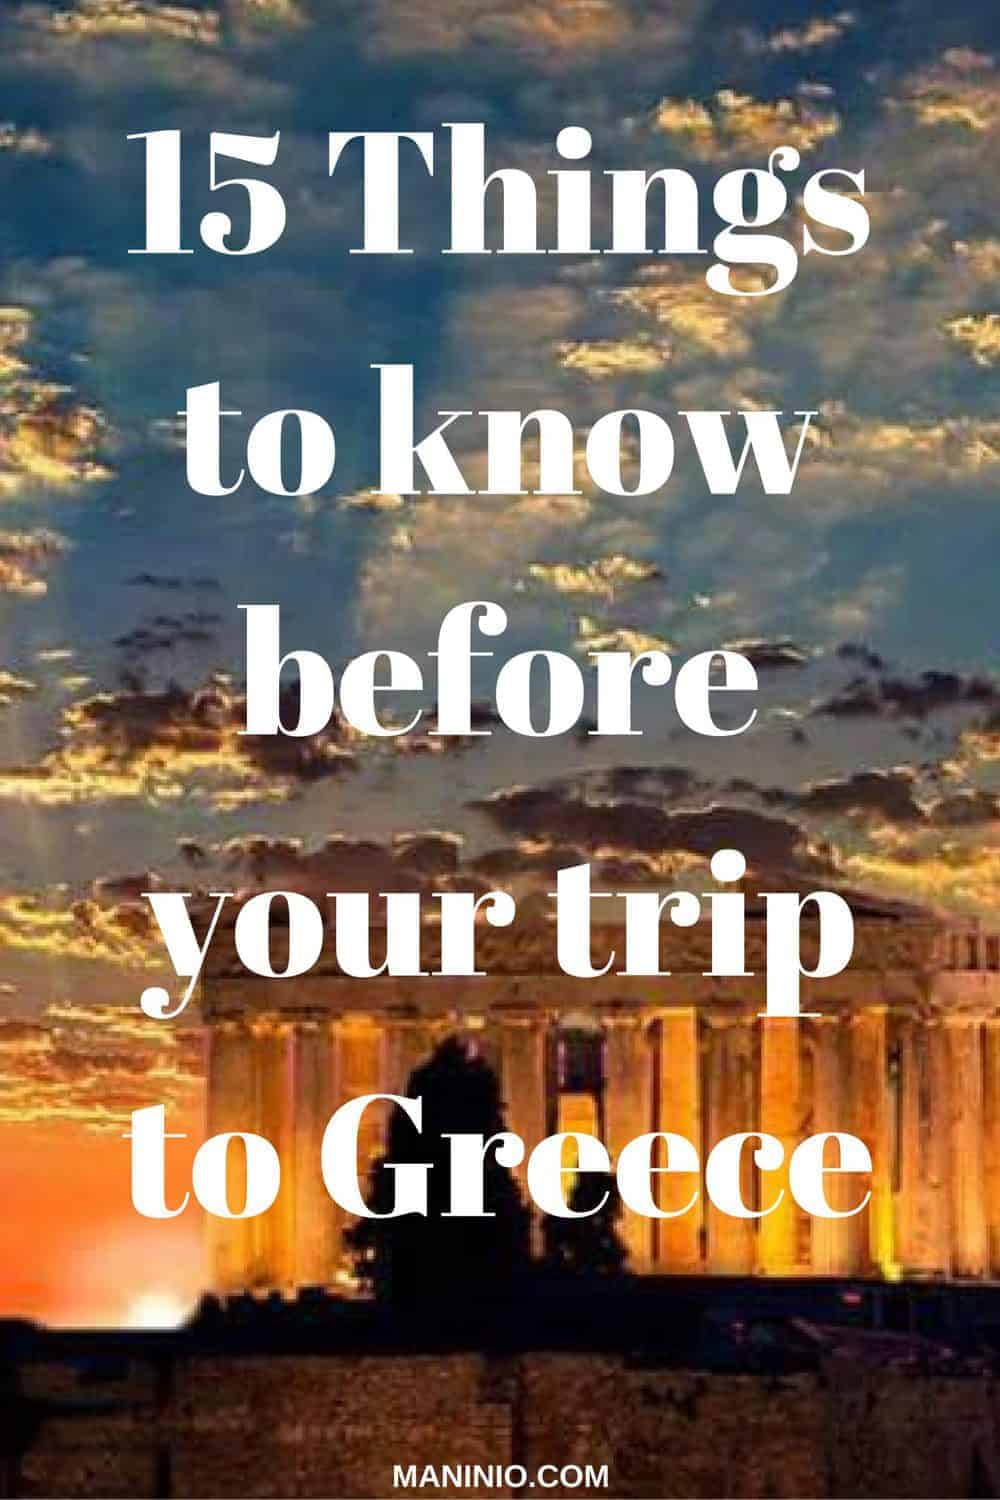 15 Things to know before your trip to Greece